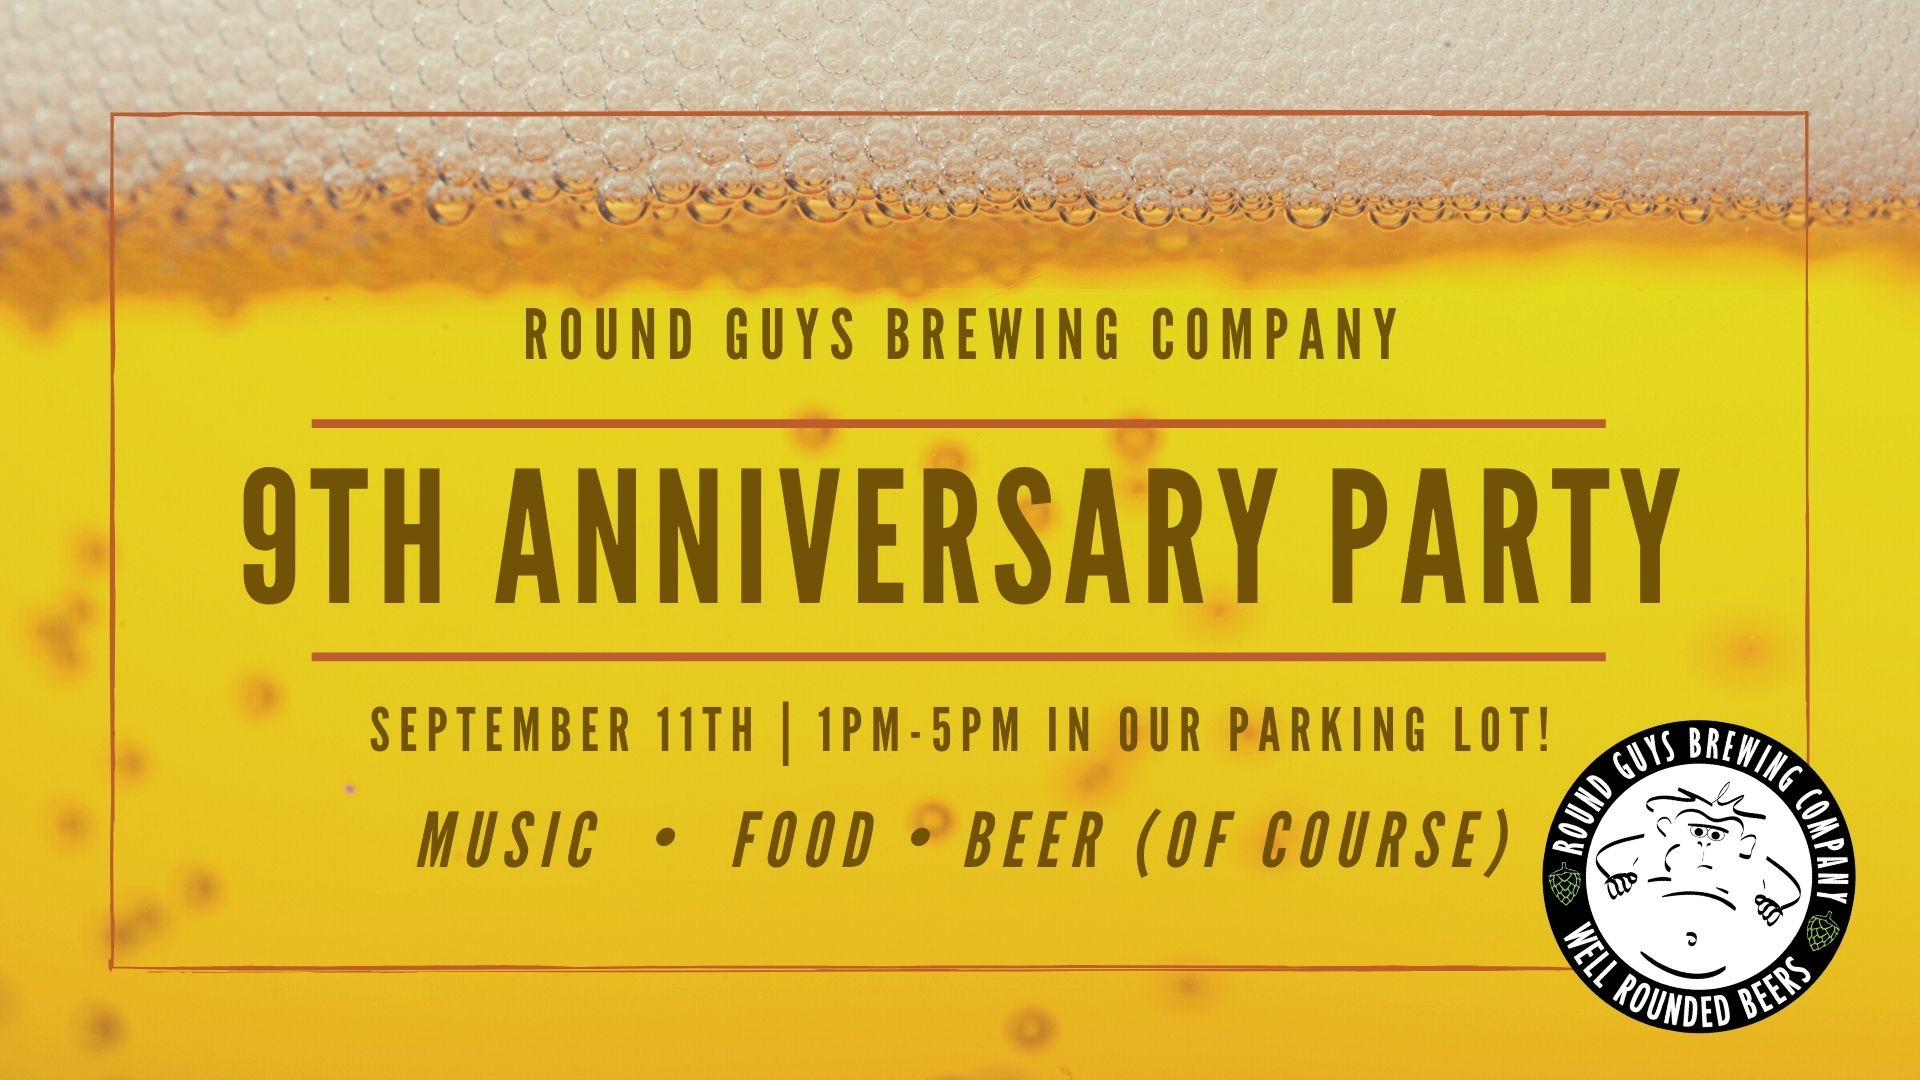 Round Guys Brewing Company's Anniversary party is on September 11, 2022!